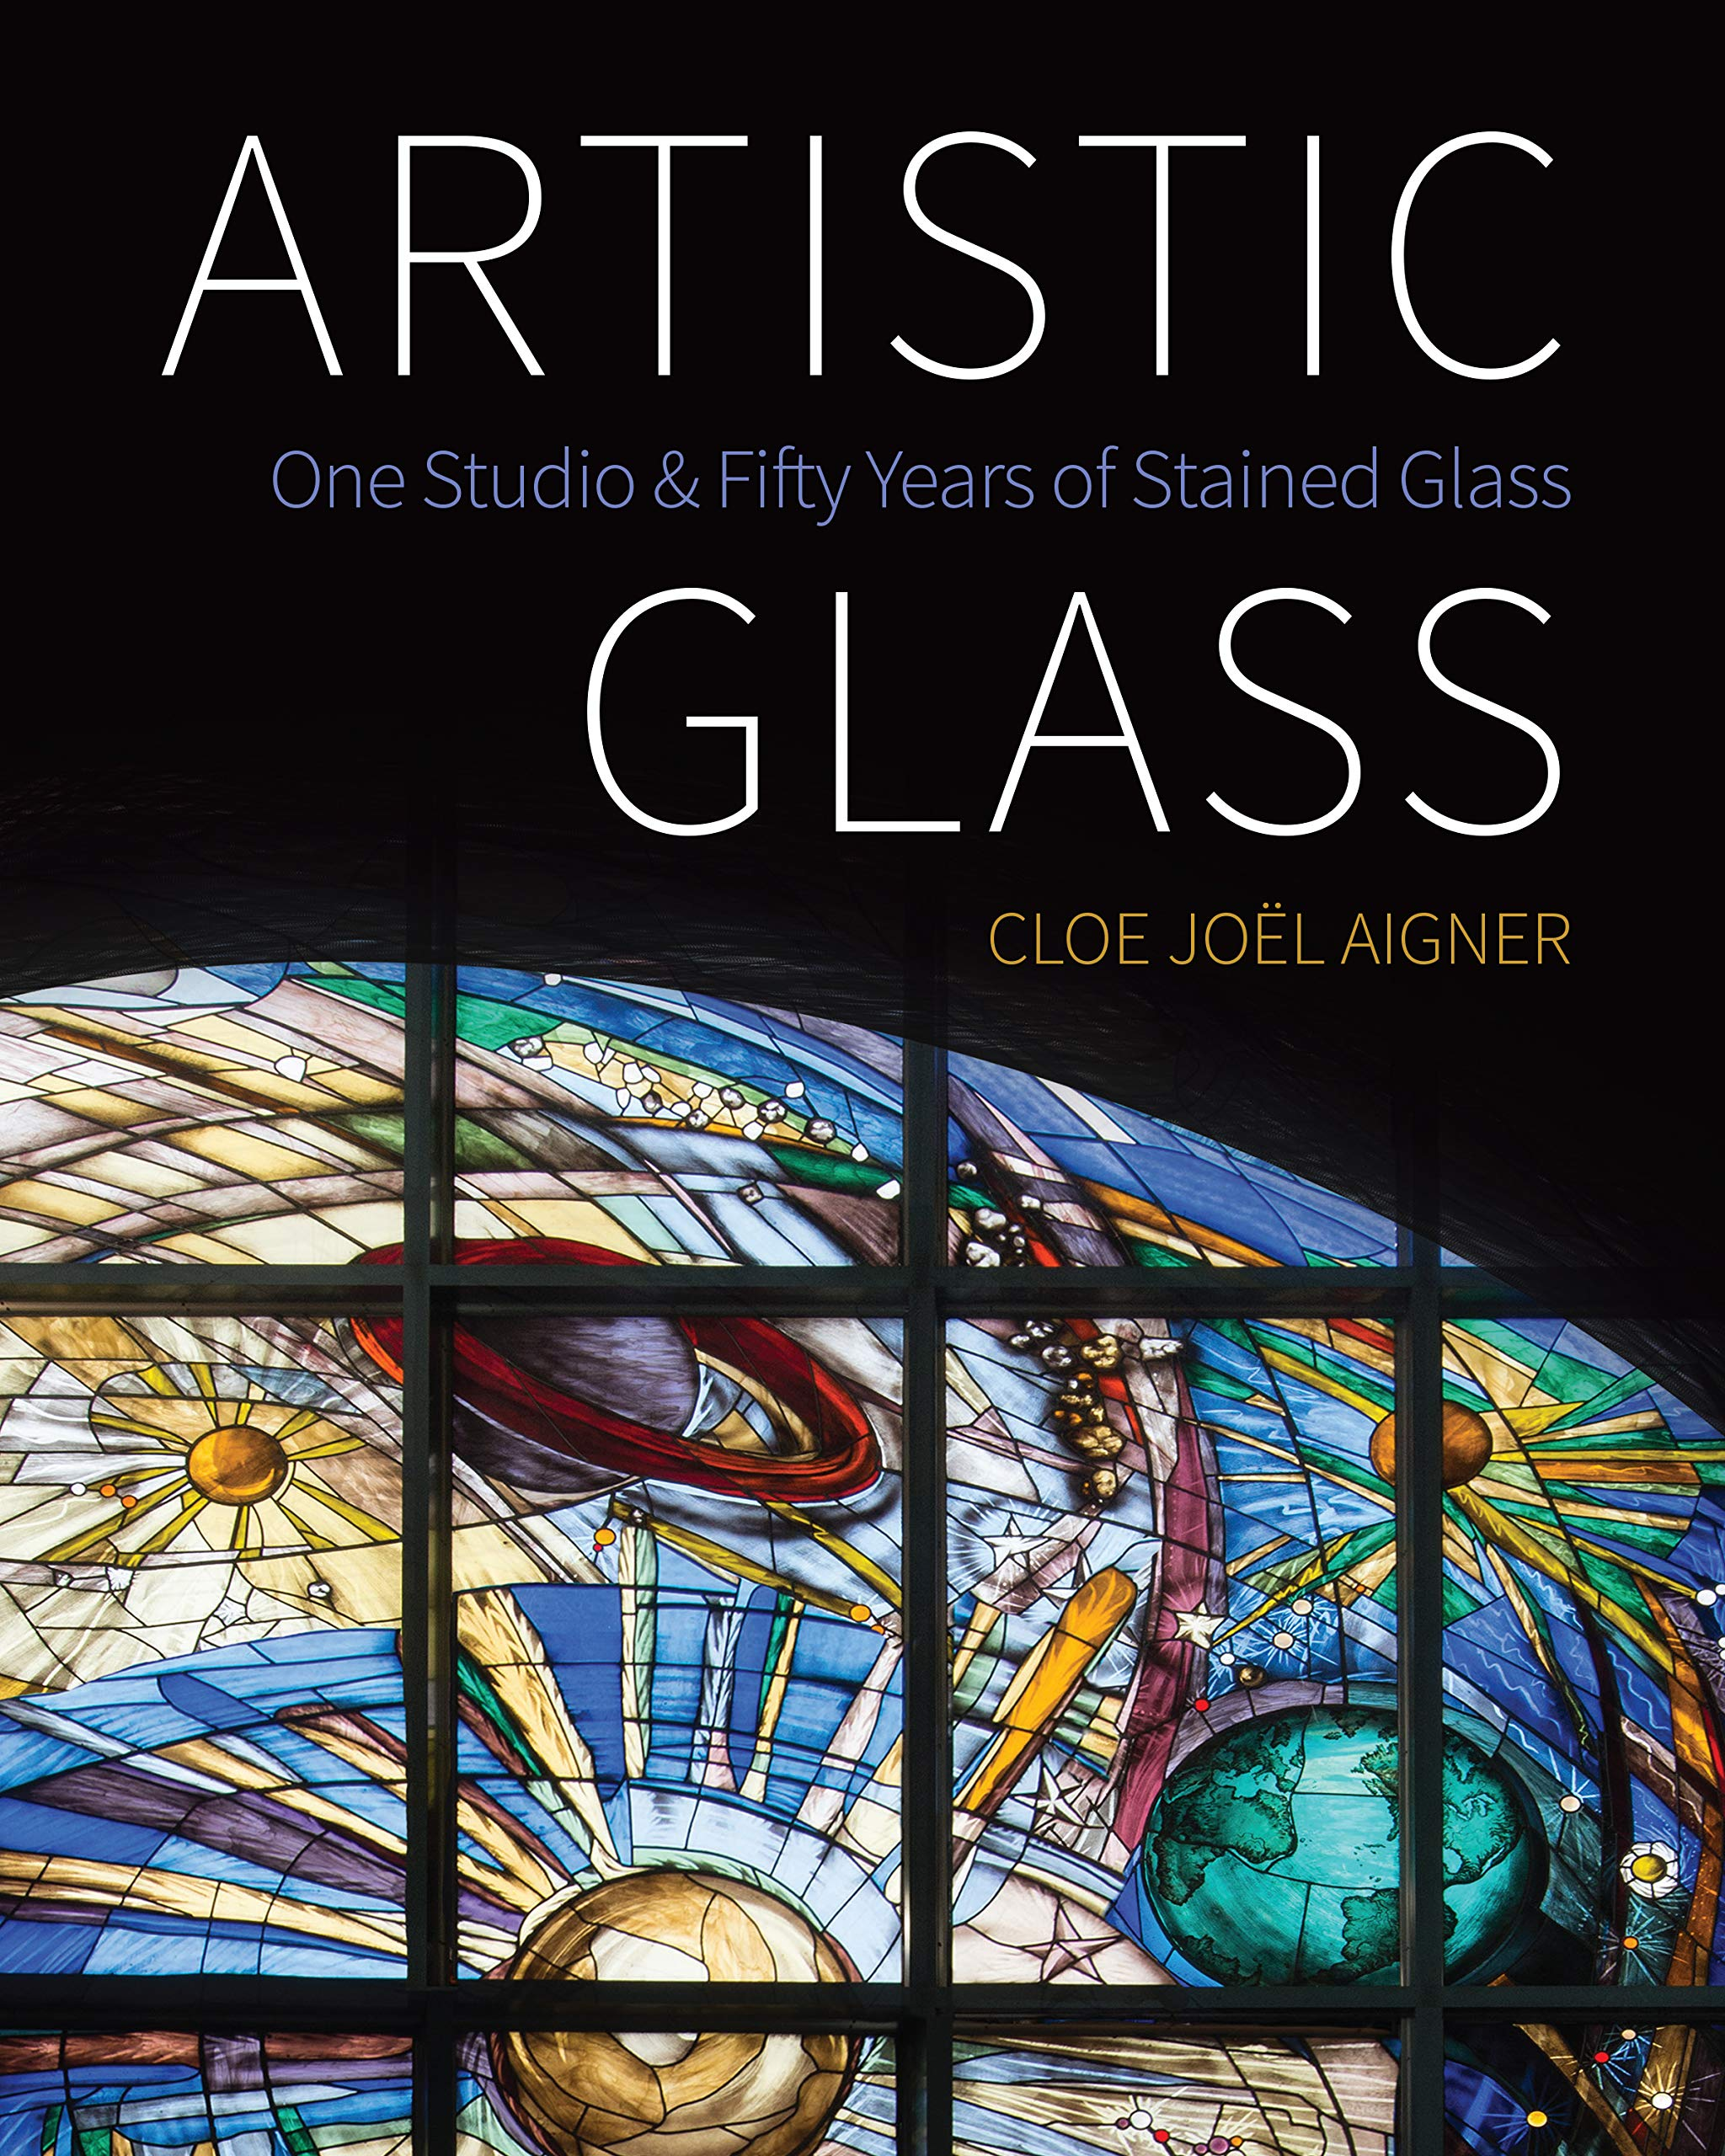 Artistic Glass, by Cloe Joel Aigner, is available now from Amazon.